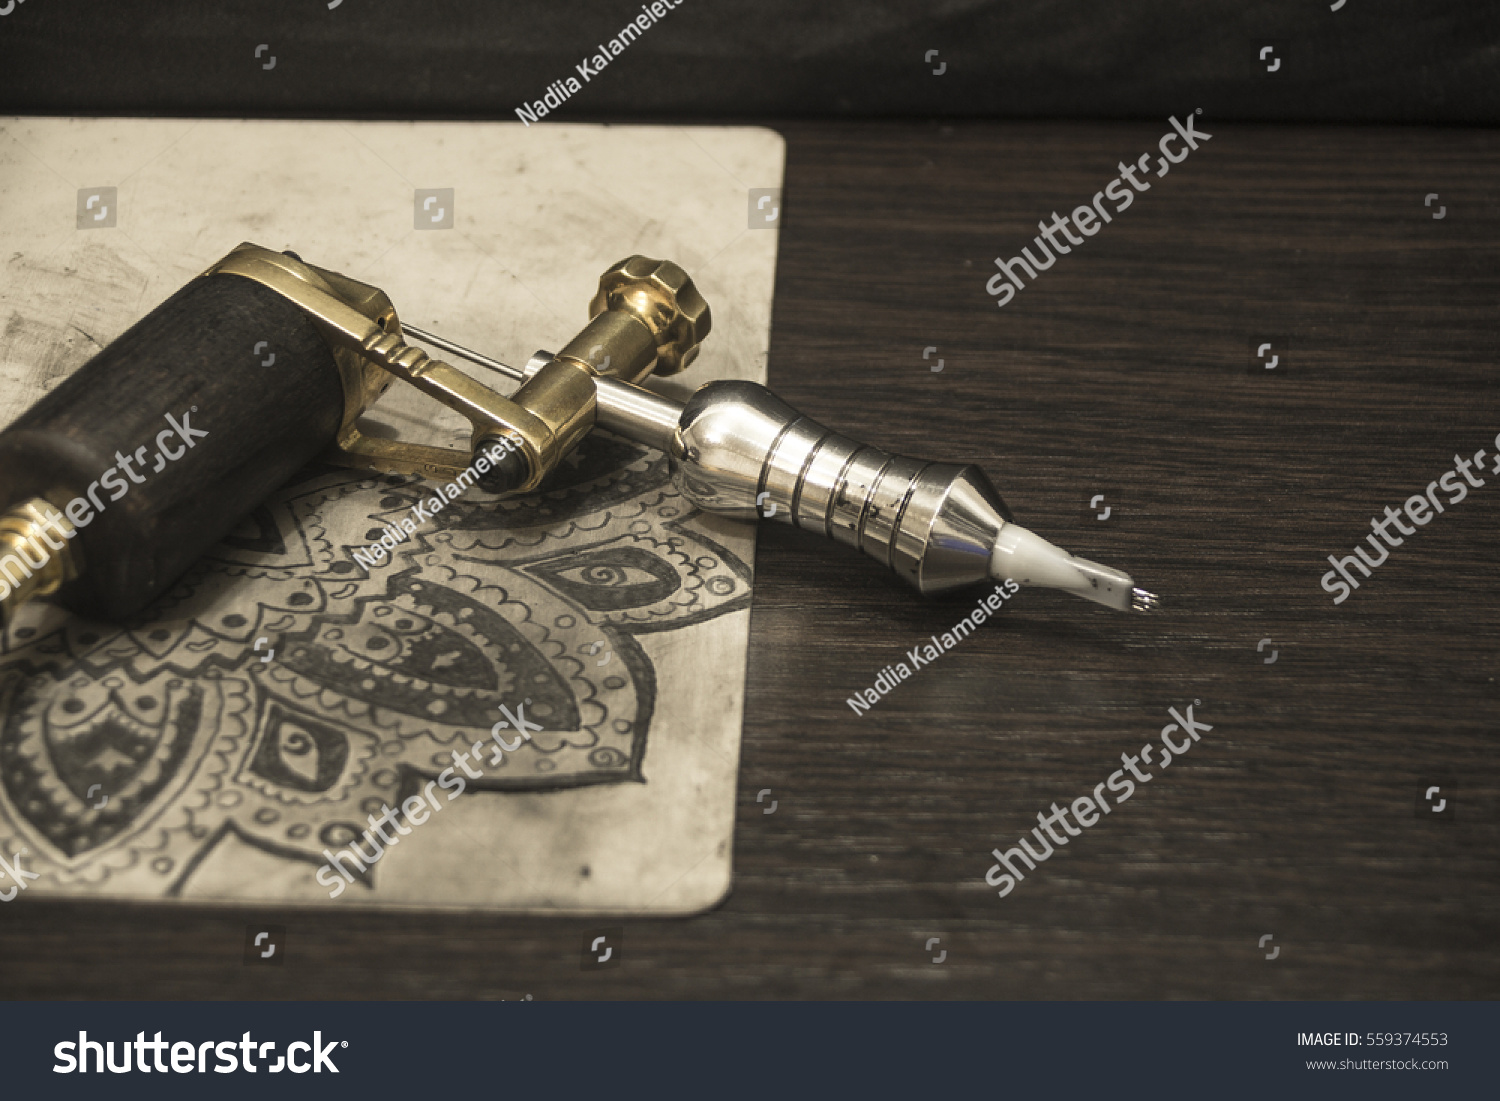 Tattoo Machine With Ink And Sketches On Tattoo Skins On Dark Wooden